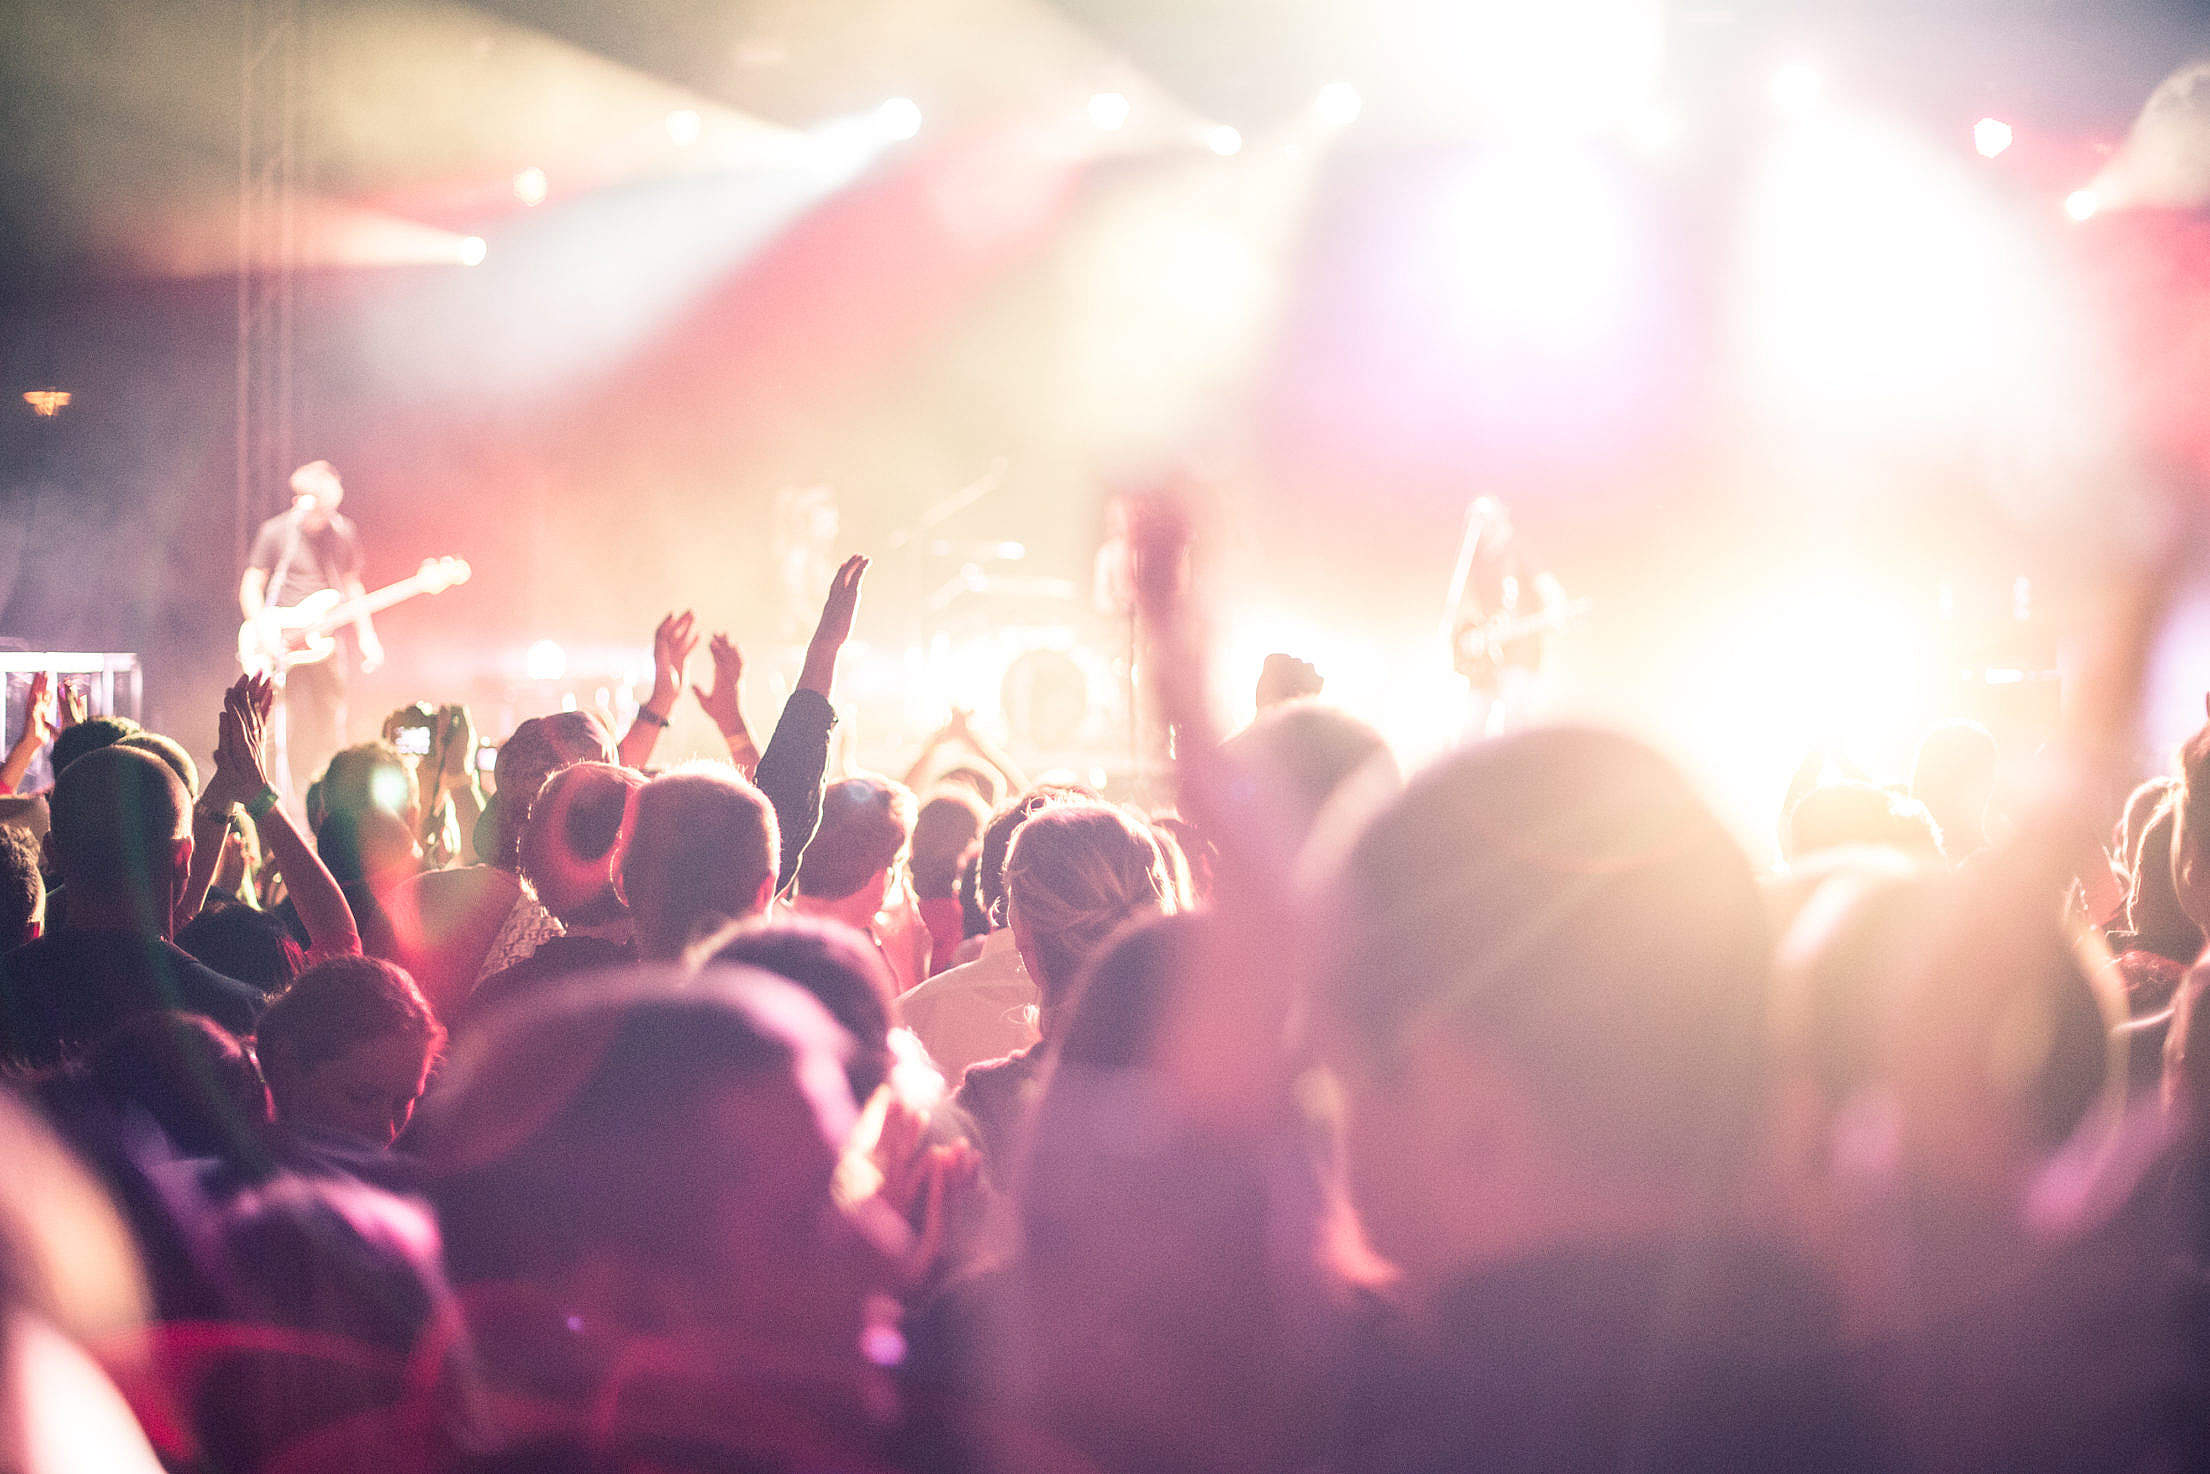 Festival Hands Up People Partying Free Stock Photo